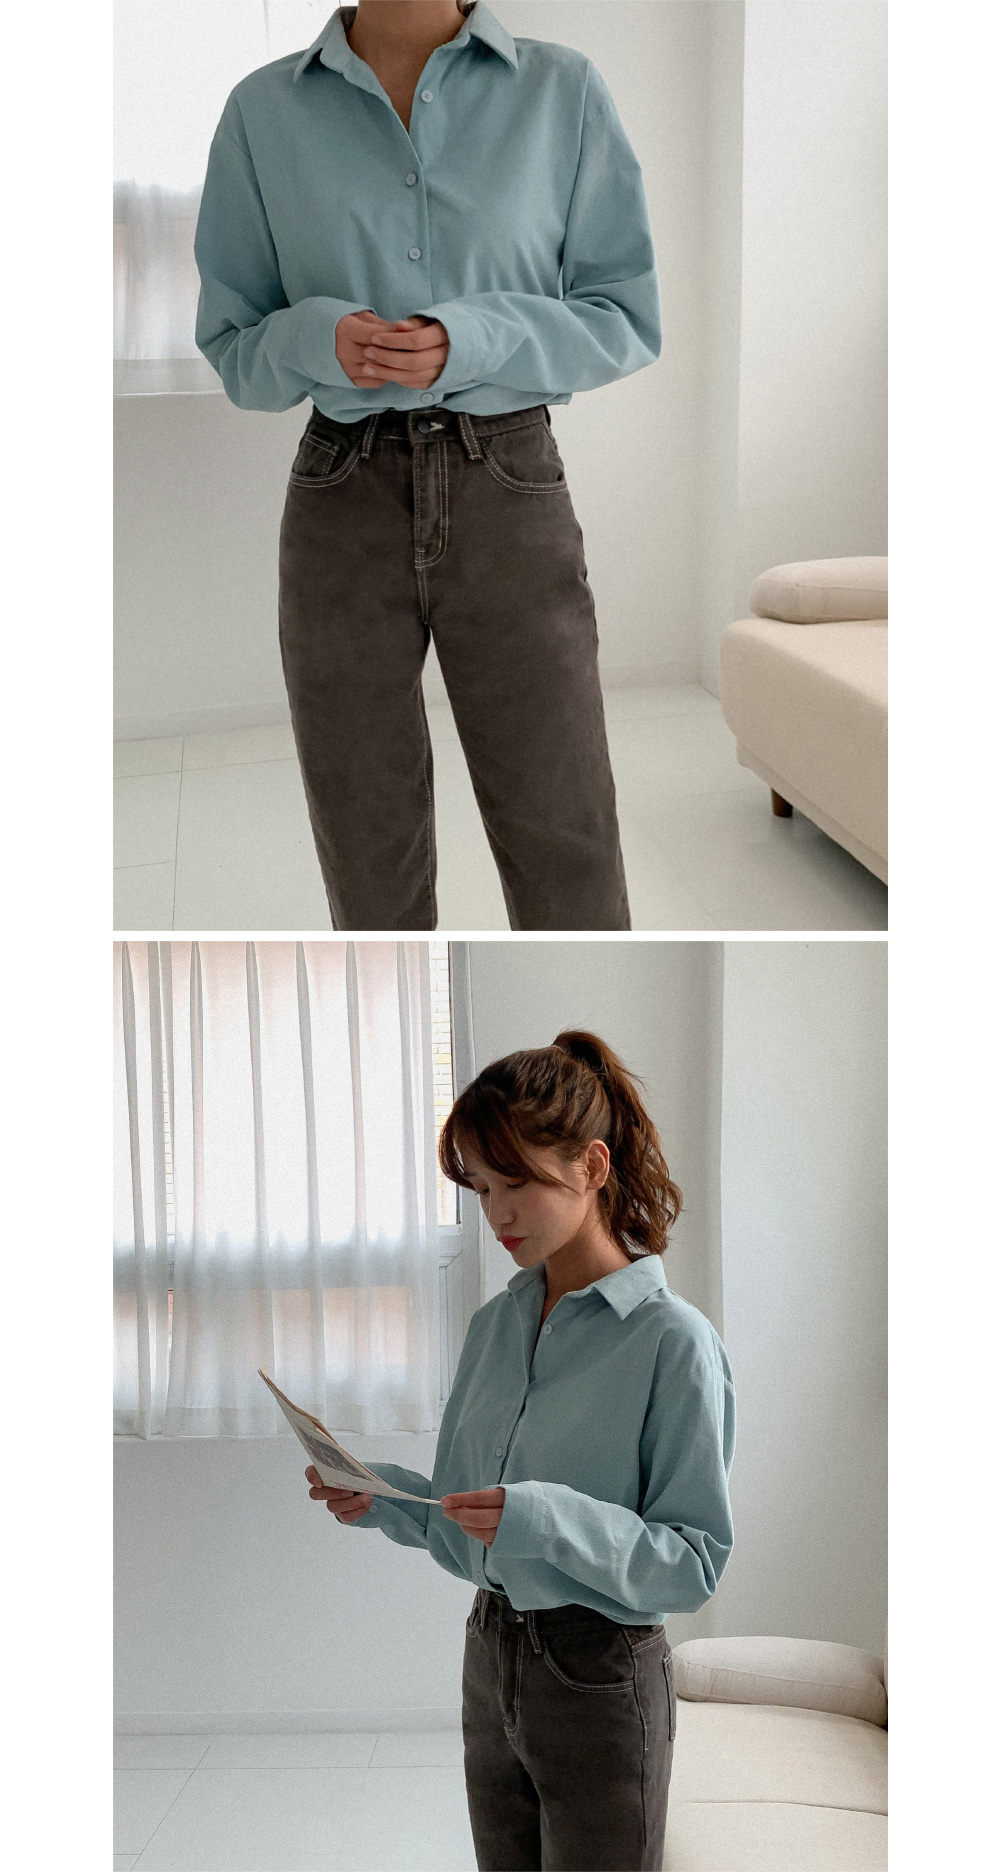 Daily stitched brushed jeans